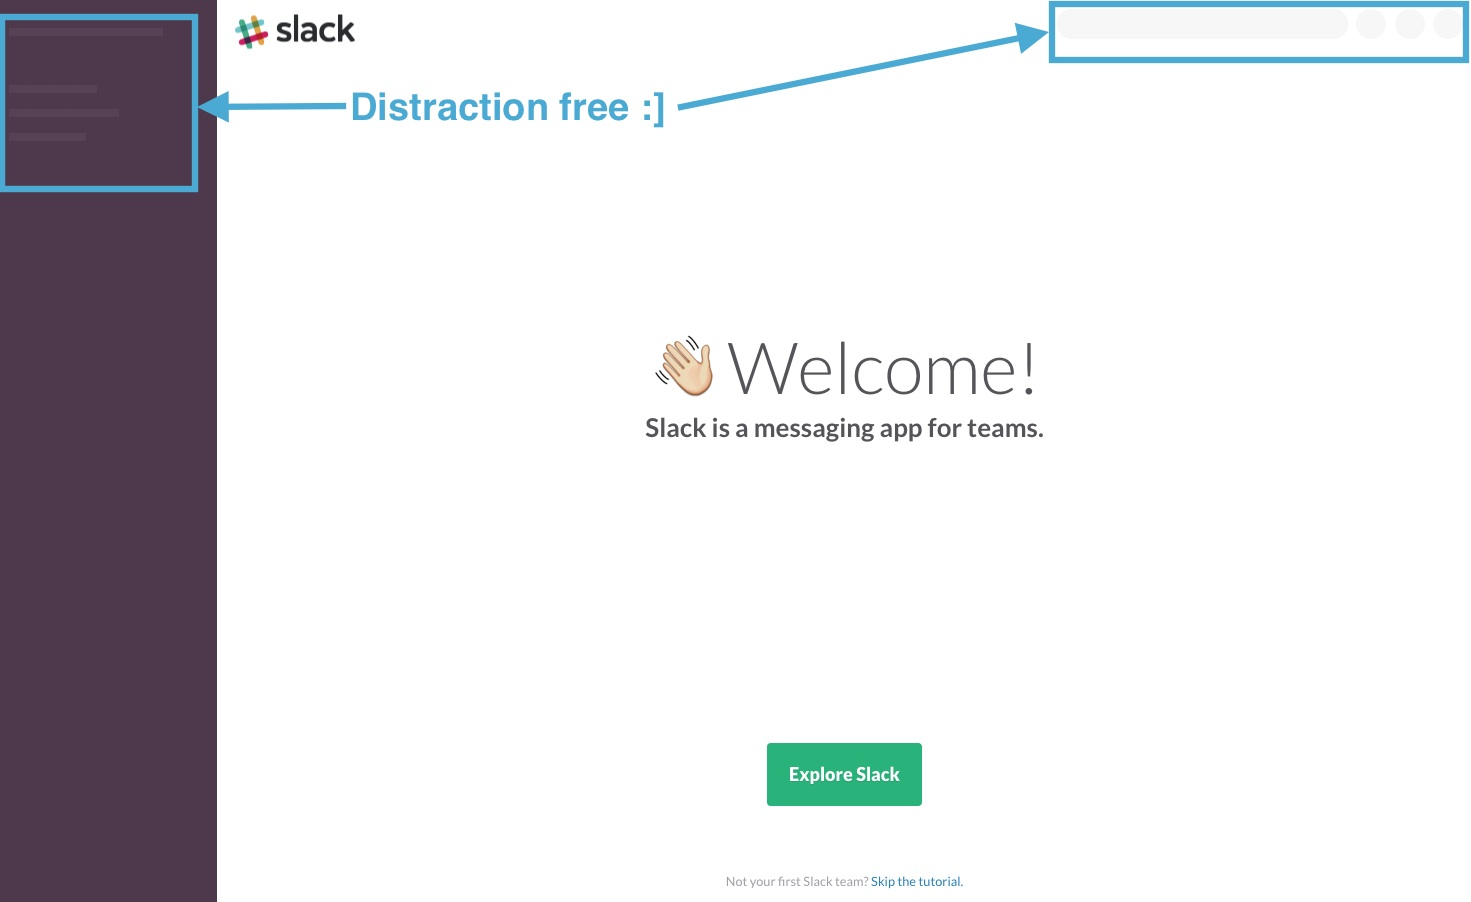 Slack new user onboarding welcome screen